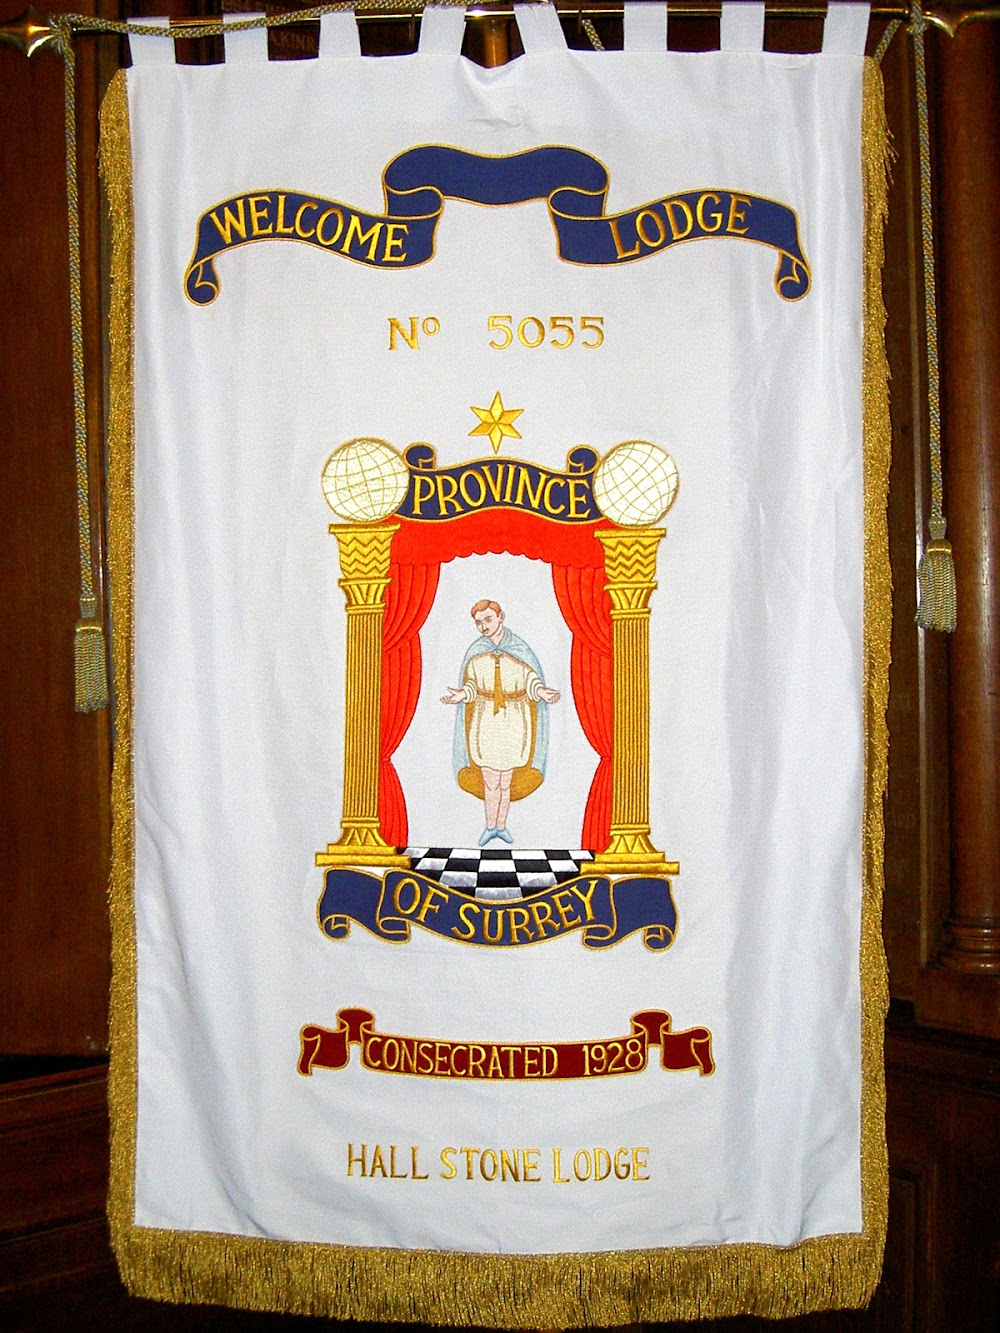 New Welcome Lodge No.5055 Banner